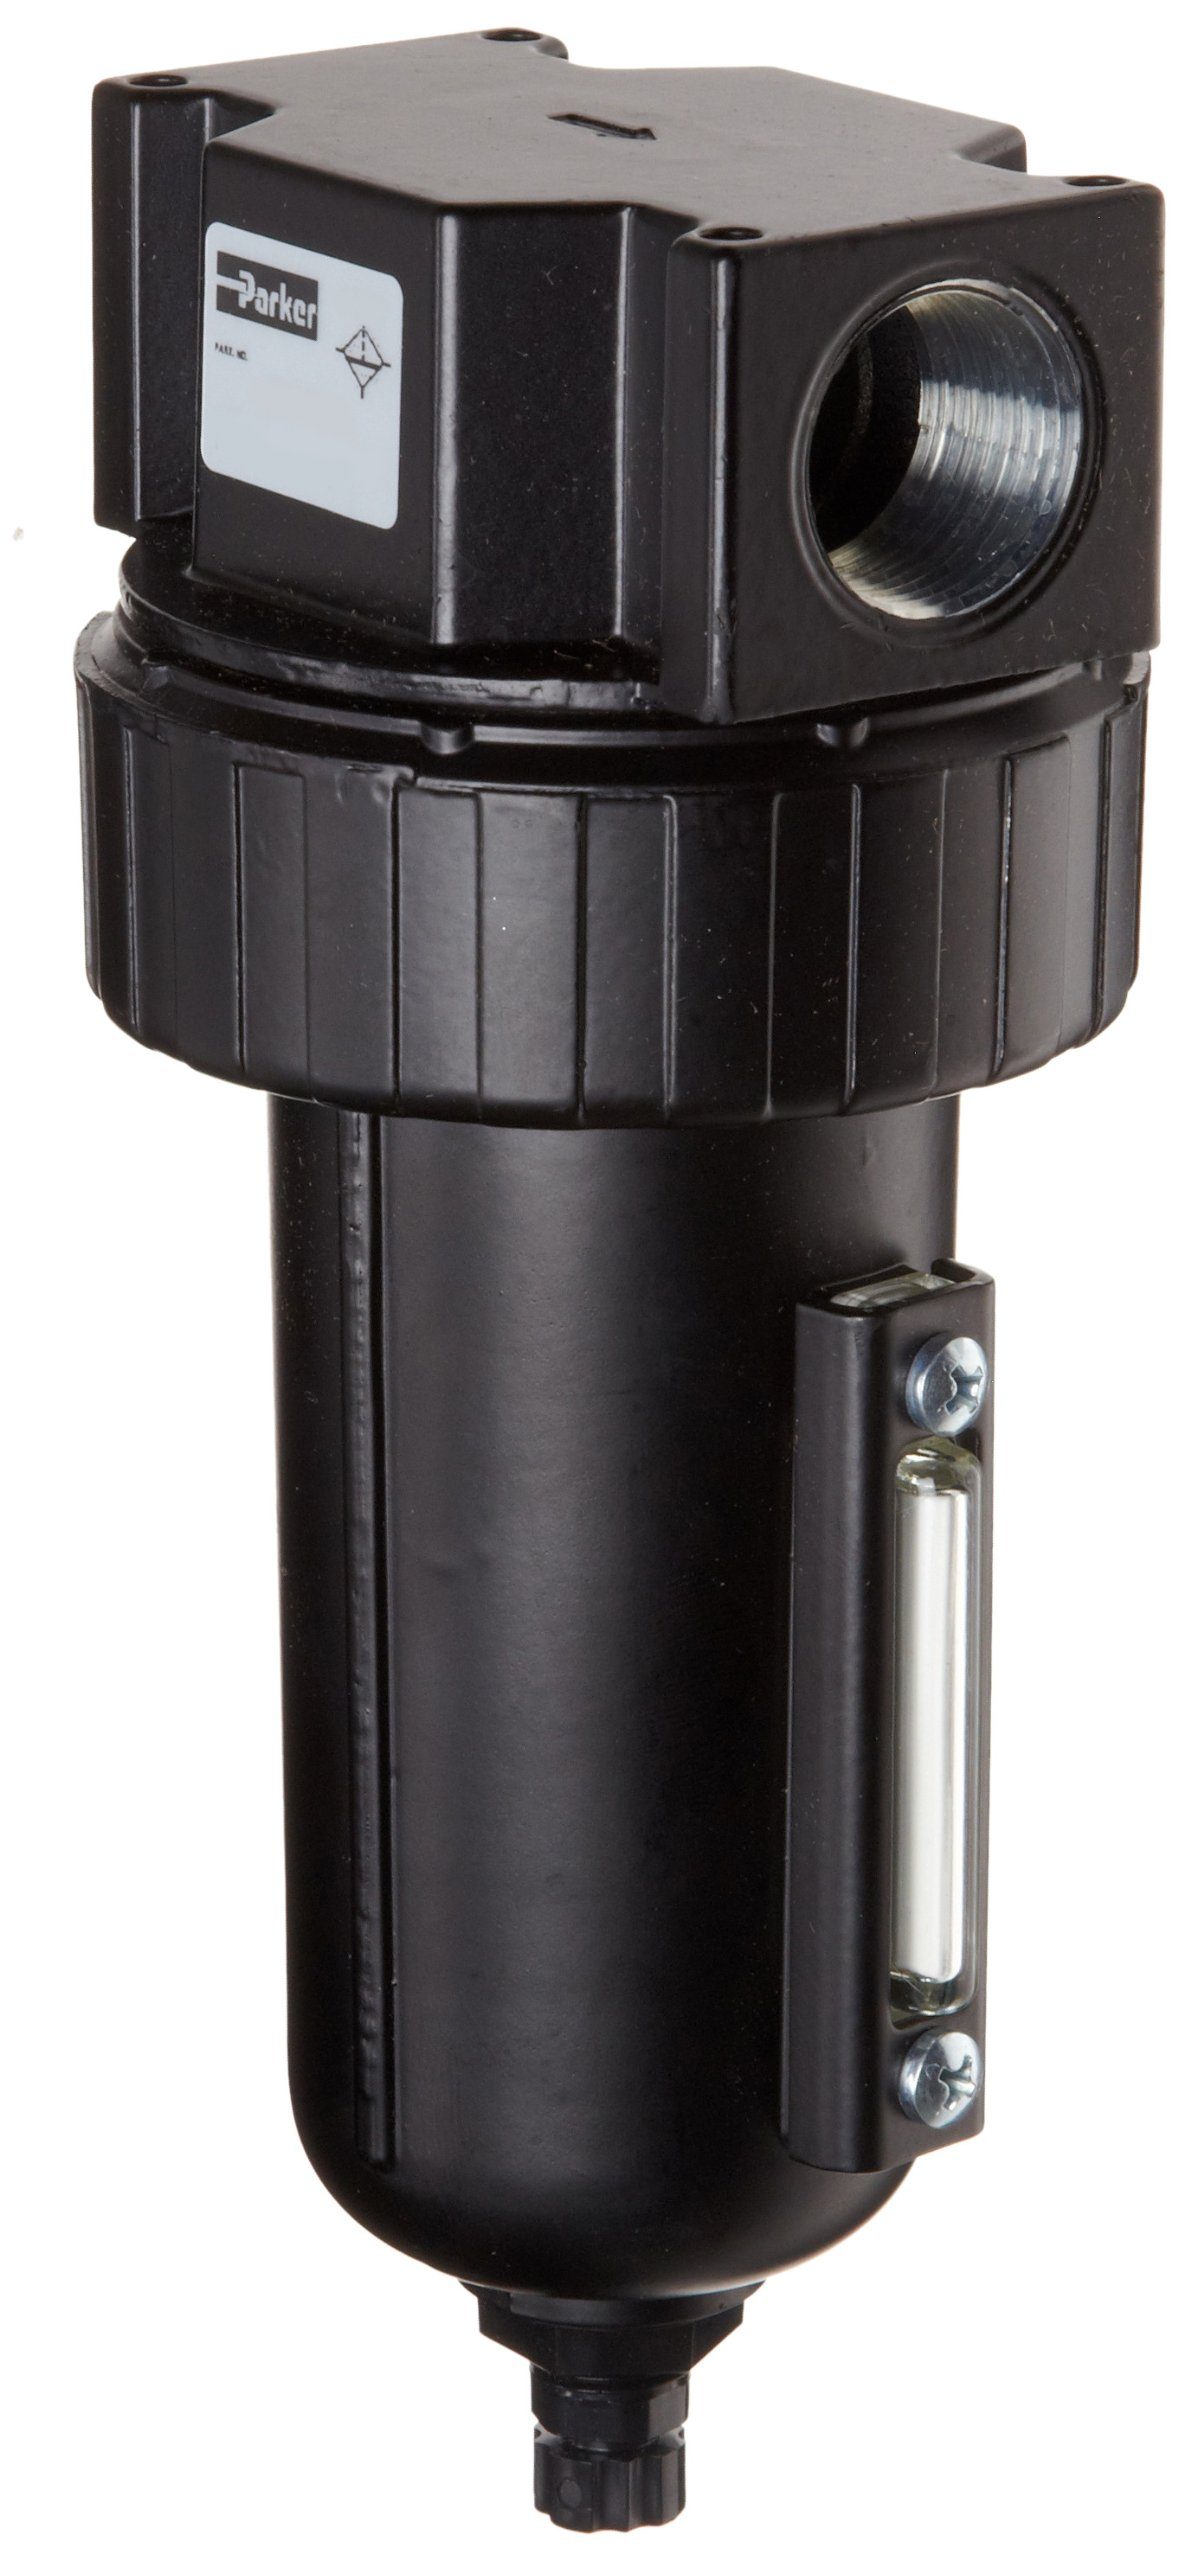 Parker 07F48AC Compressed Air Filter, Removes Particulate, Metal Bowl with Sight Gauge, Auto Float Drain, 40 Micron, 145 scfm, 3/4'' NPT by Parker